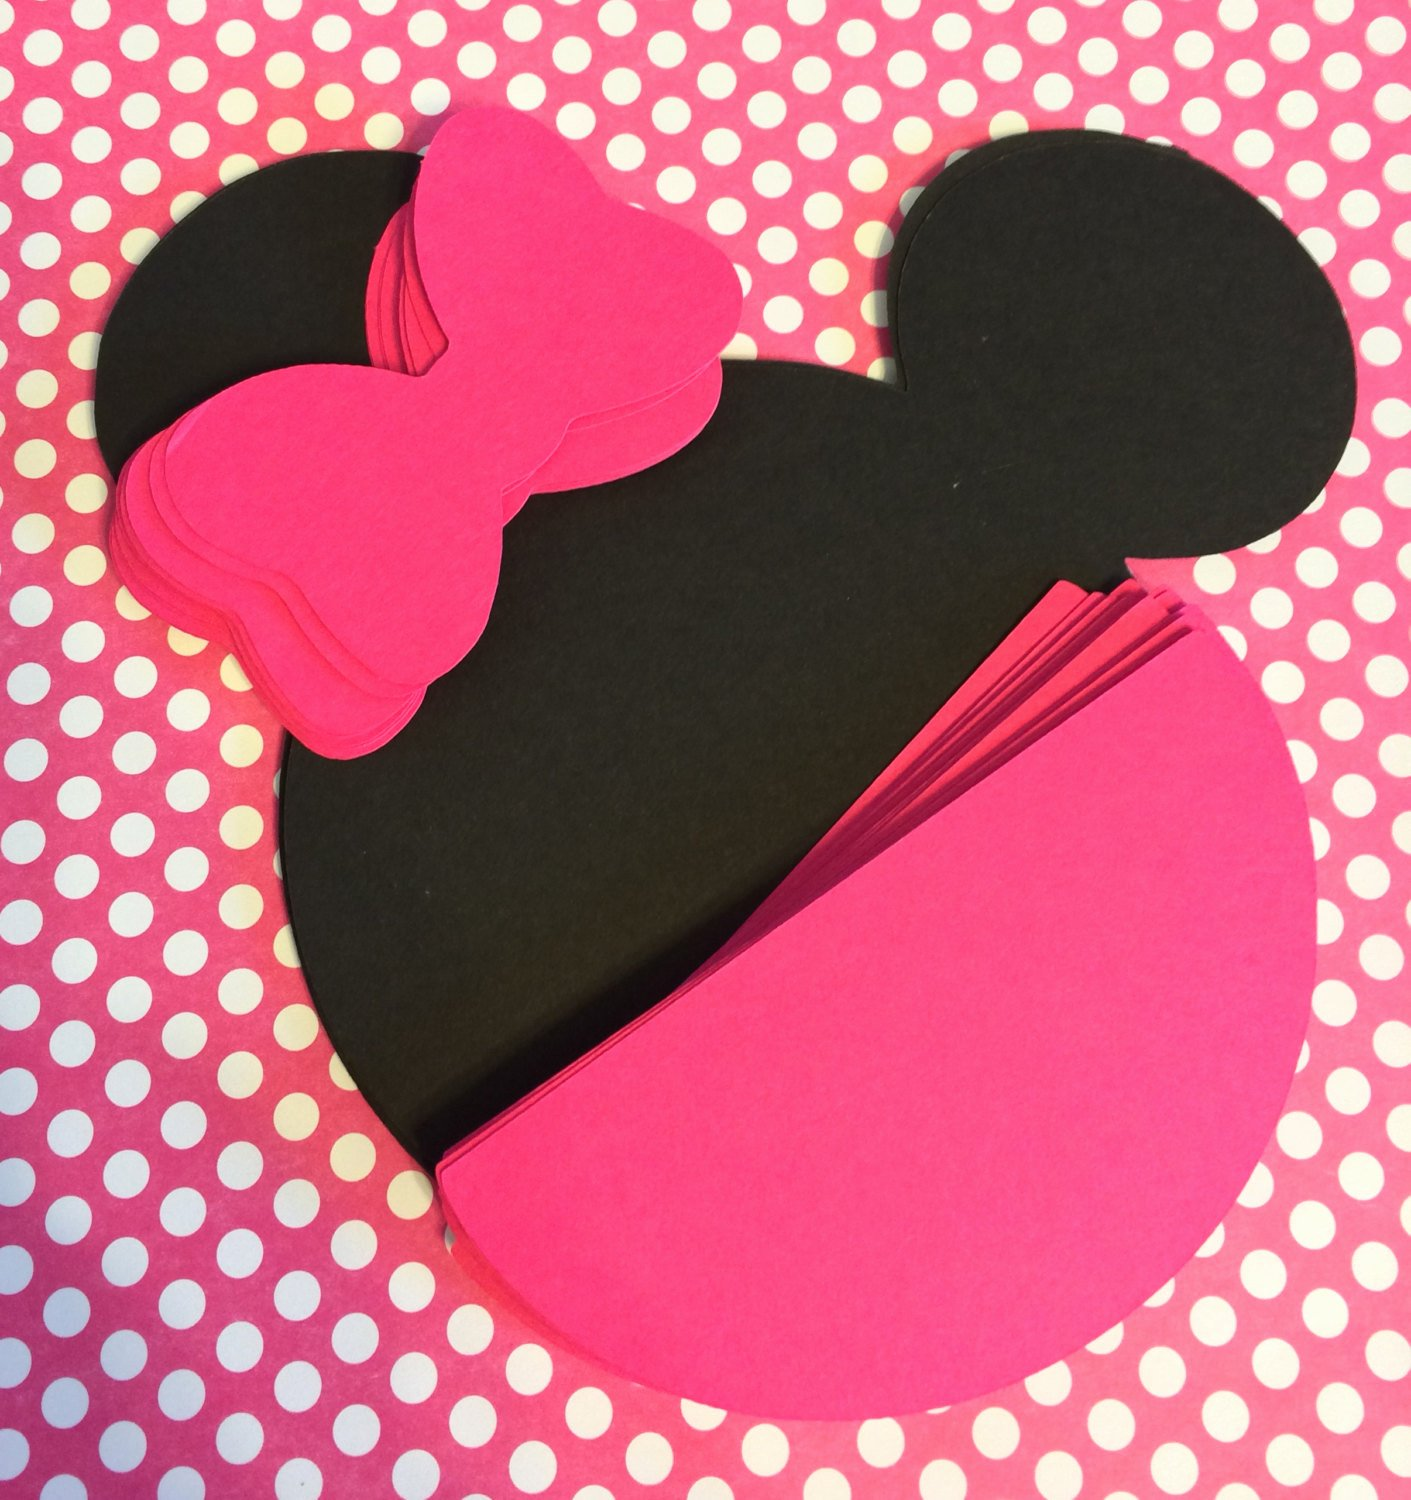 Homemade Minnie Mouse Invitations New 10 Diy Hot Pink Minnie Mouse Die Cut Invitations